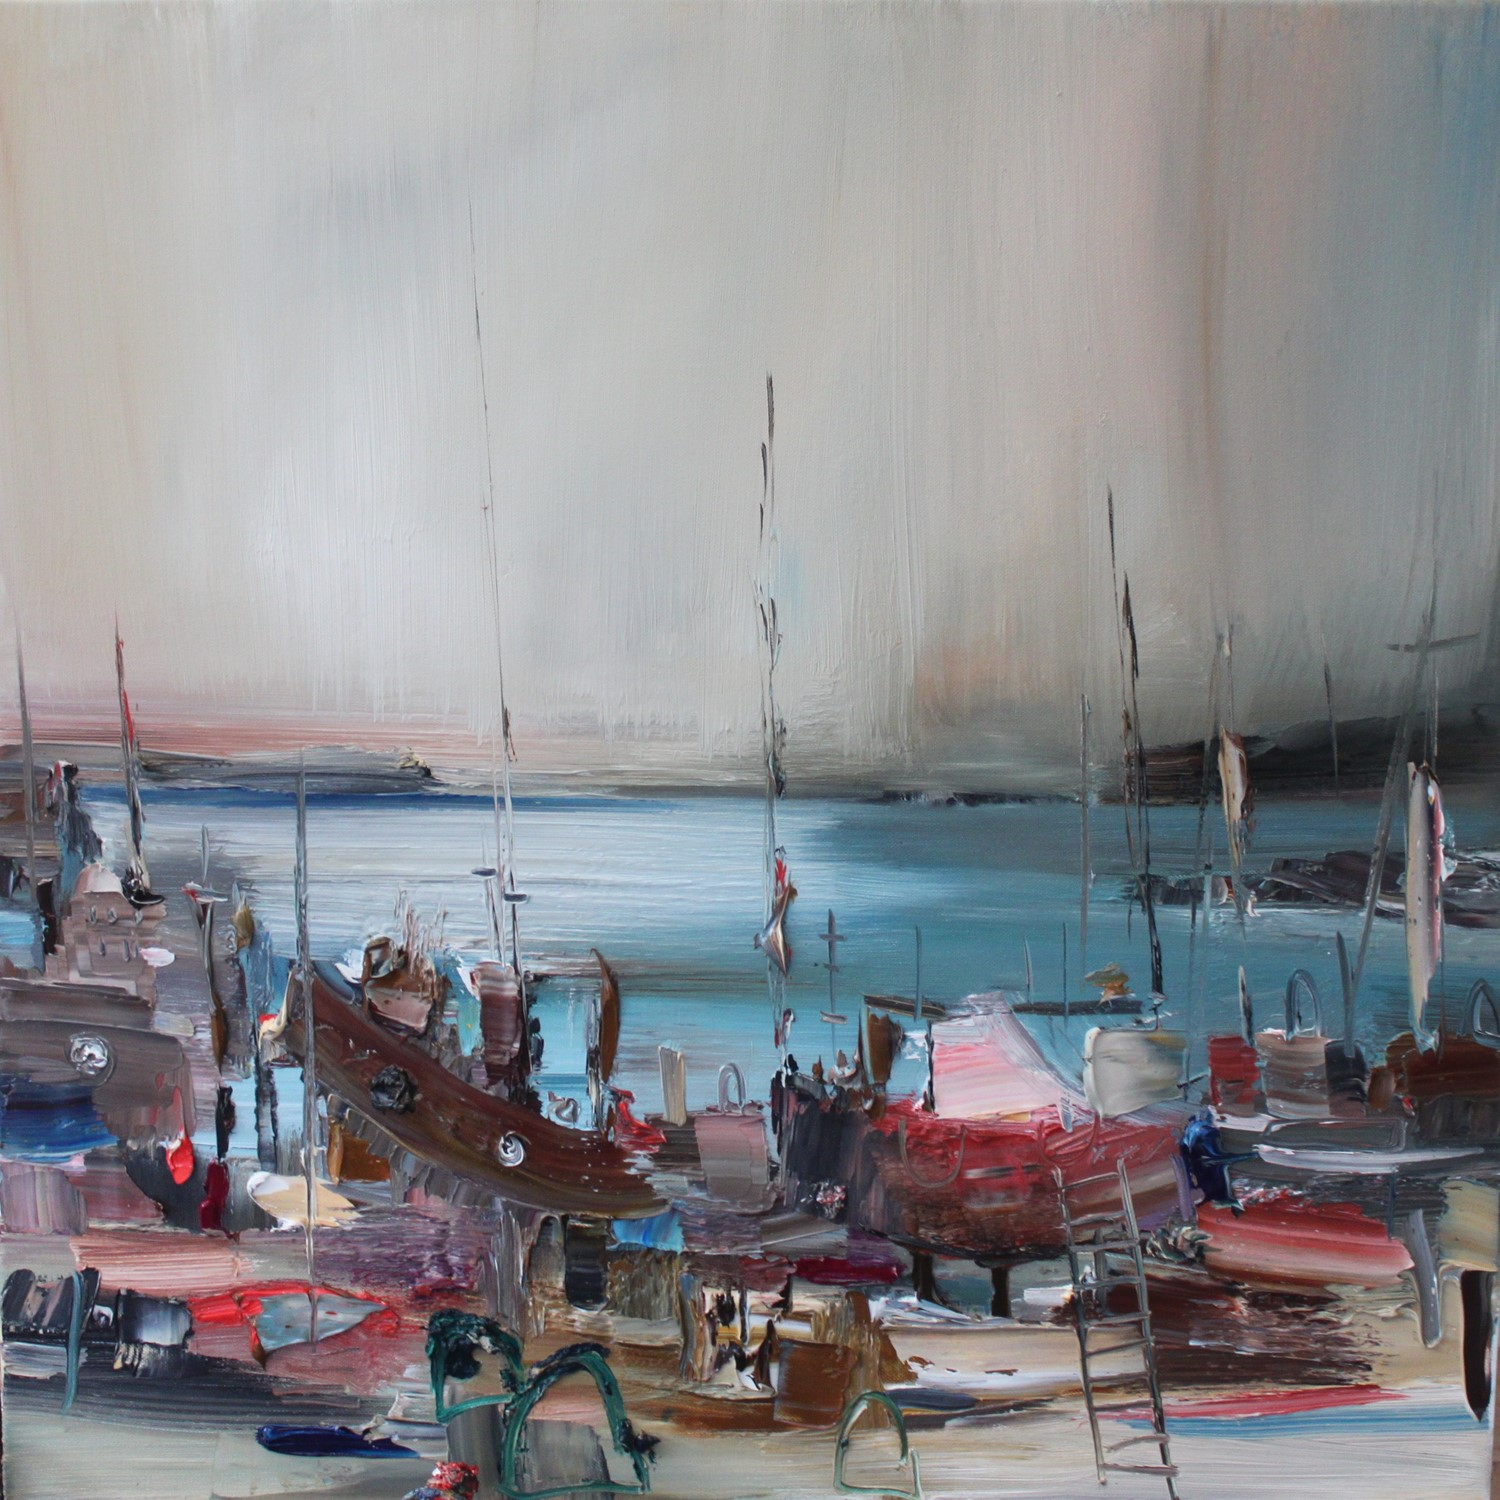 'A shamble of Boats' by artist Rosanne Barr